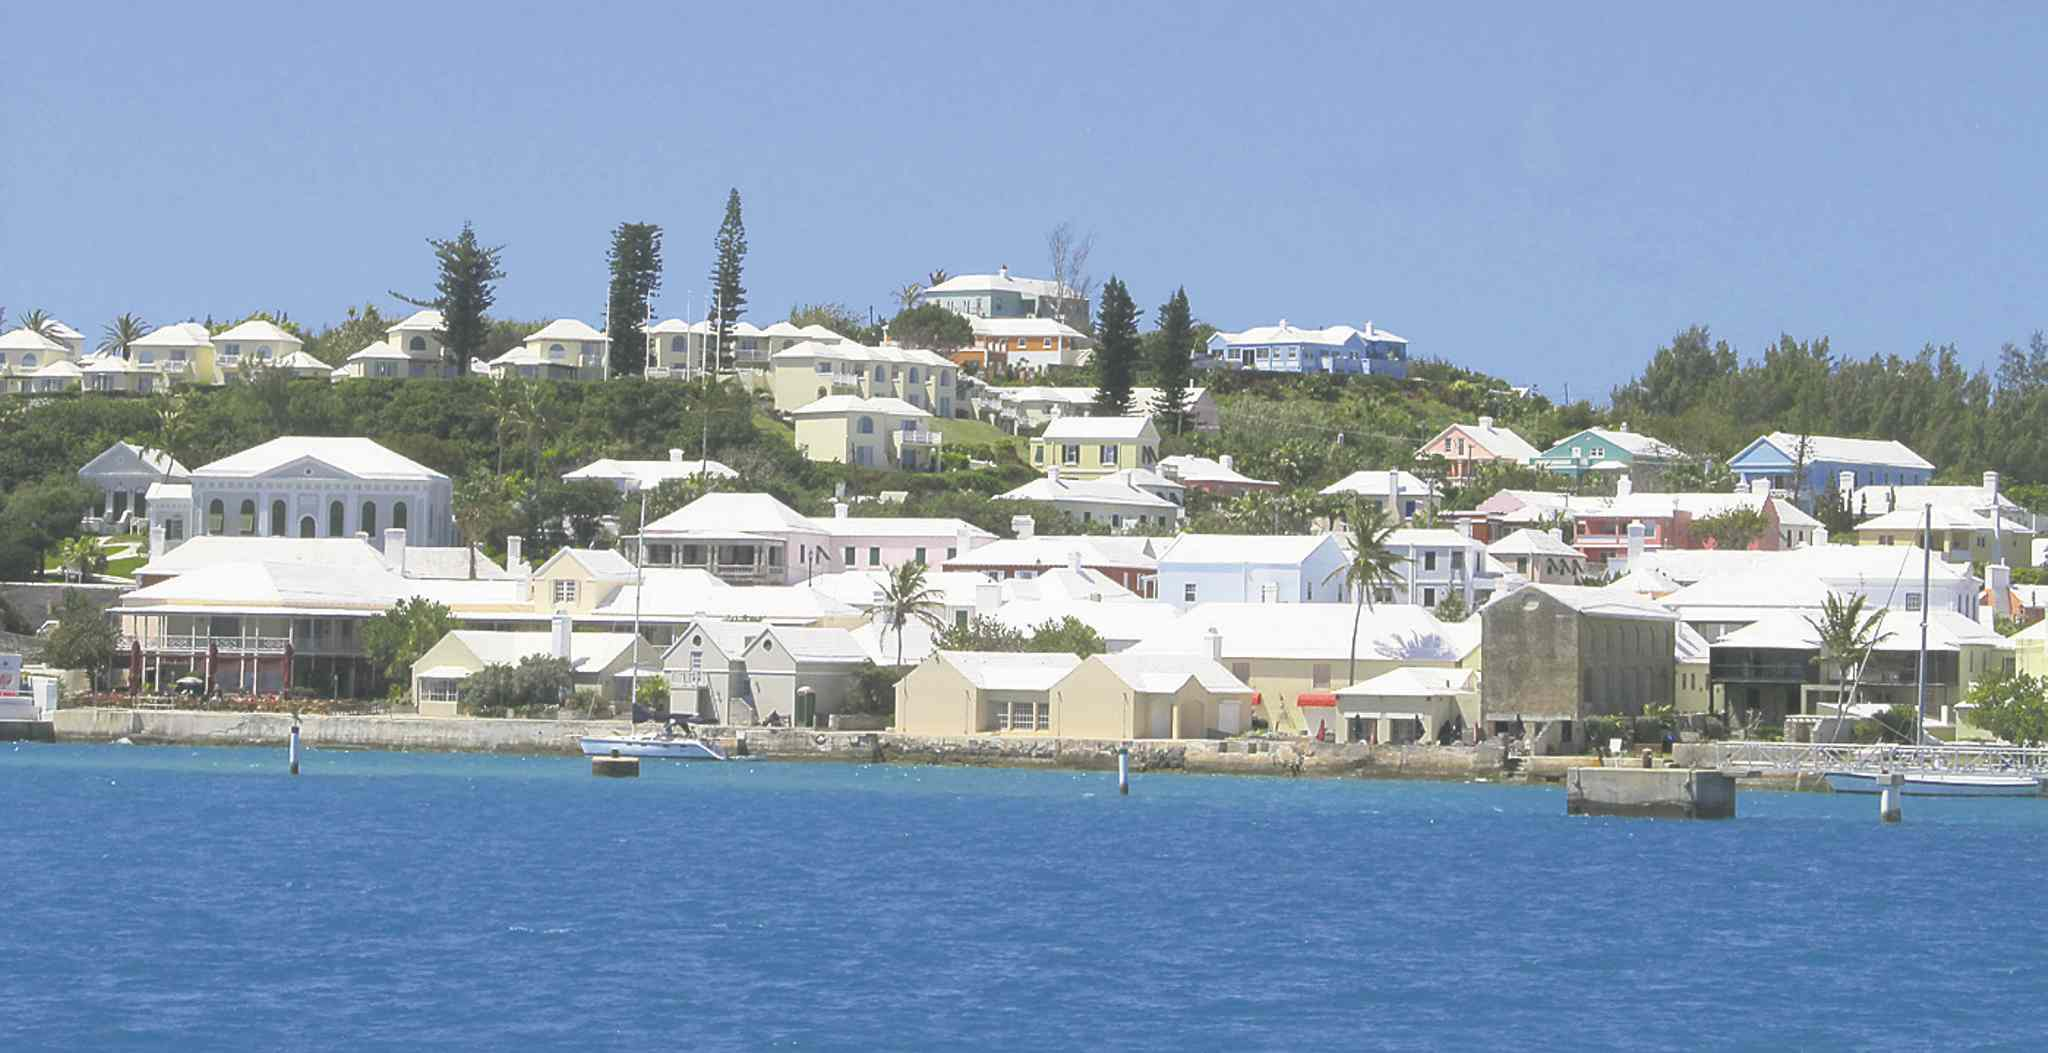 Bermuda buildings with white roofs designed to collect and purify rain water.